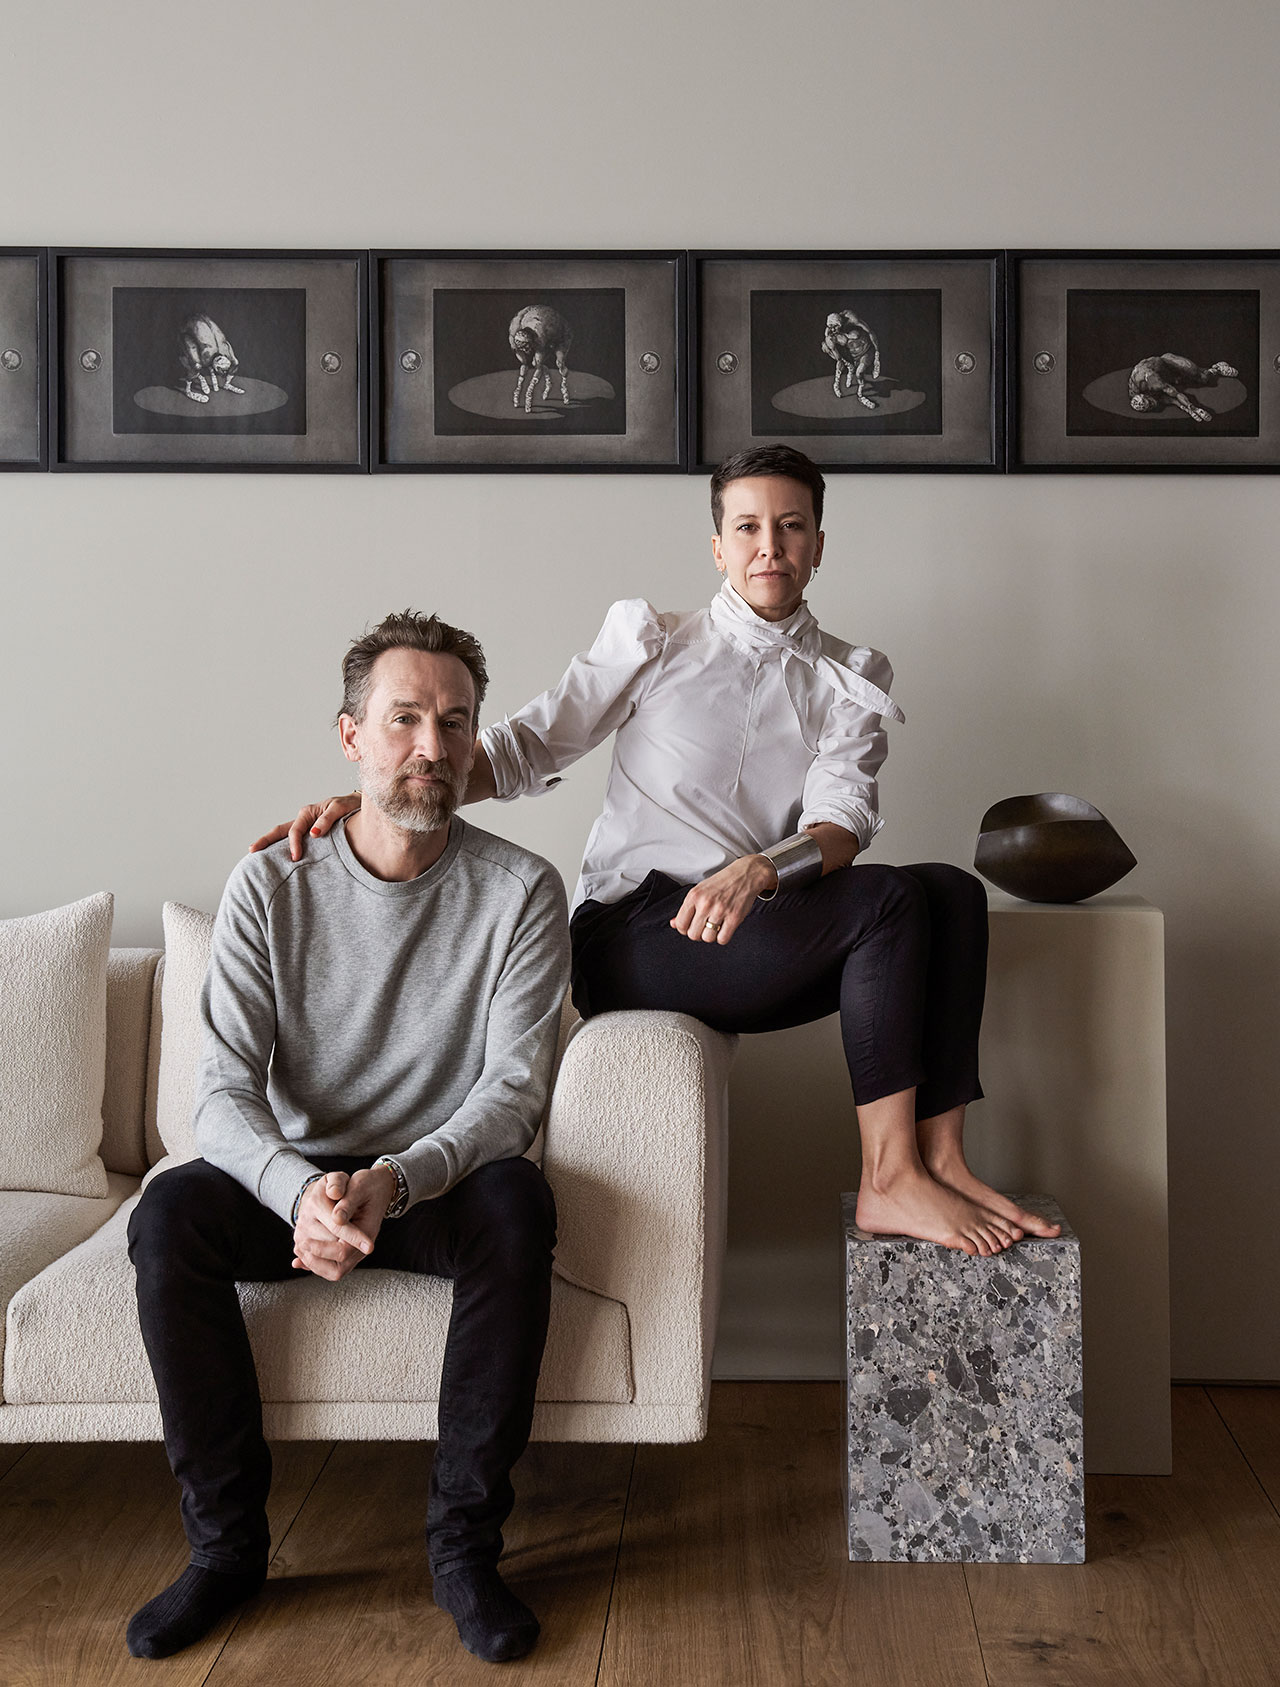 Photography by Adrian Gaut.Styling by Colin King. © Vipp Portrait of Sofie Christensen Egelund, 3rd generation Vipp-owner and her husband Frank Christensen Egelund.